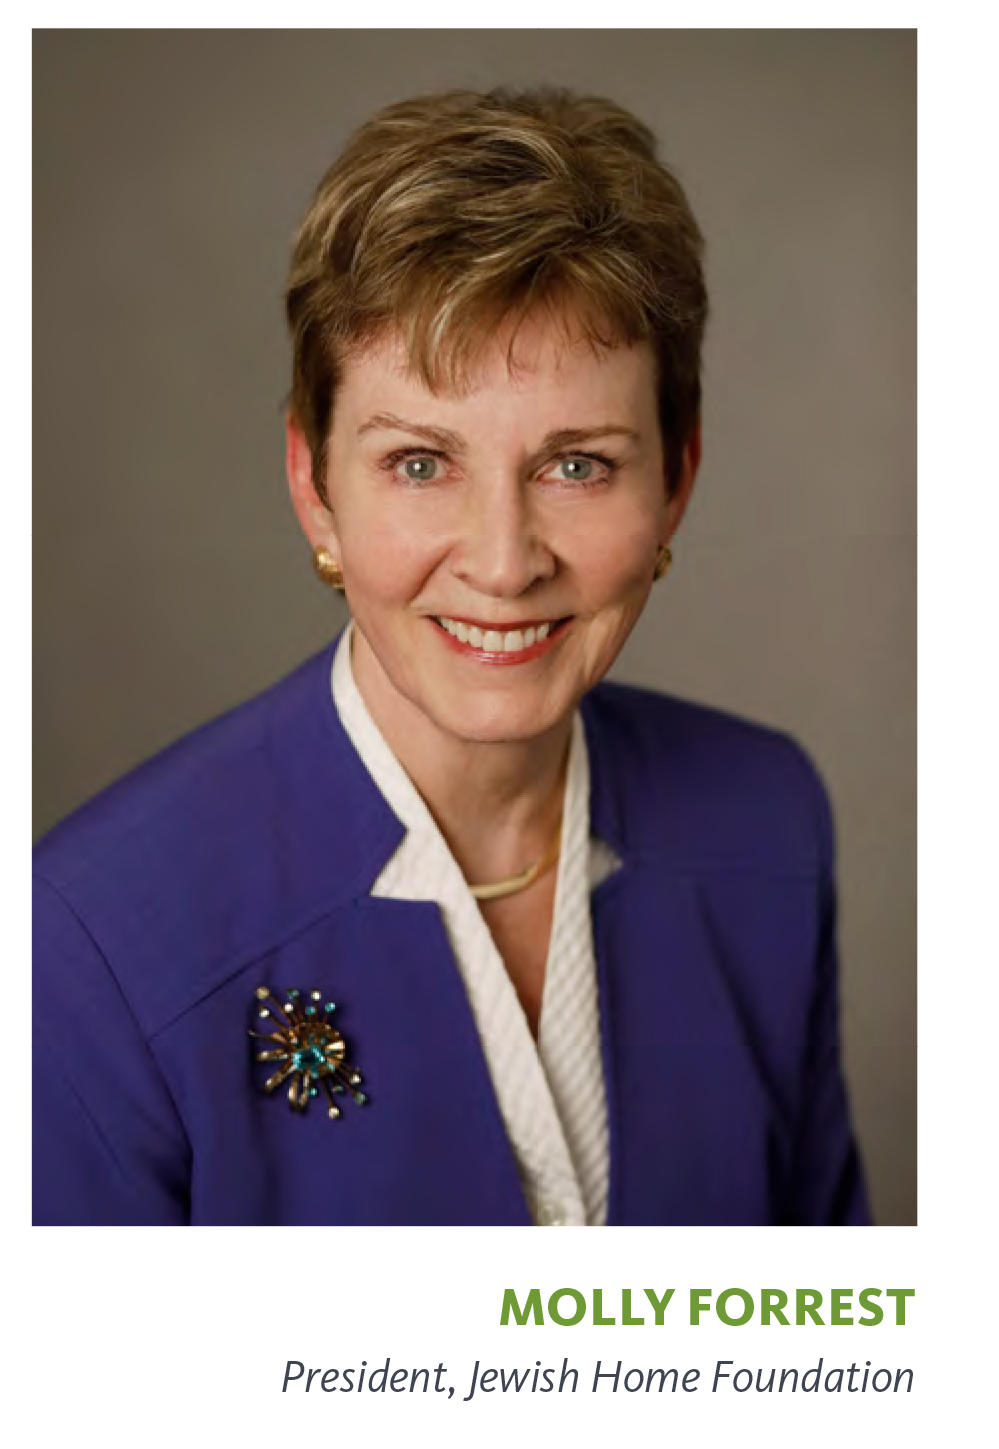 Letter from Board Chair Molly Forrest